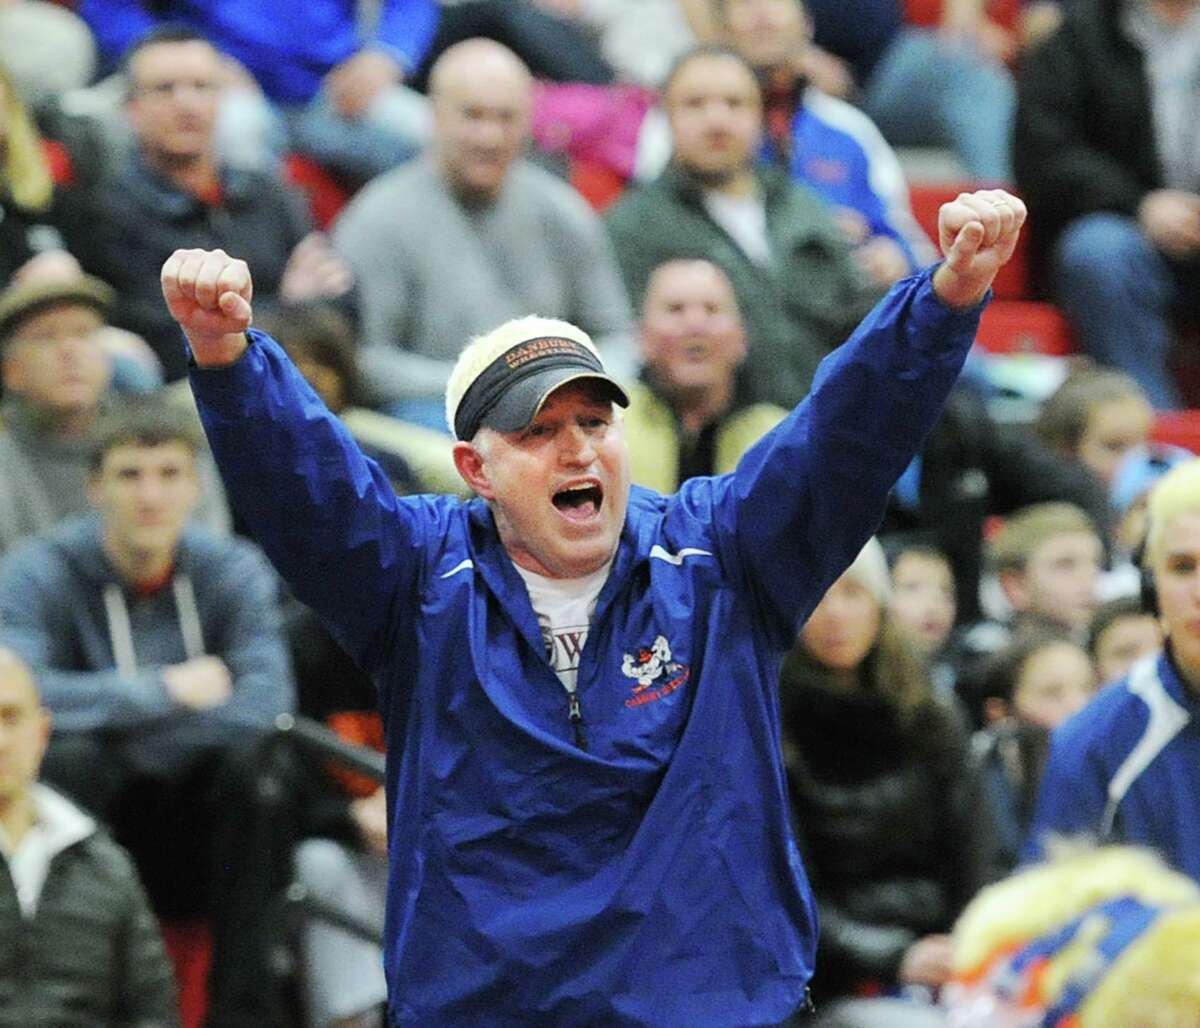 Danbury wrestling coach Ricky Shook reacts during the FCIAC championships in February 2016 at New Canaan High School.